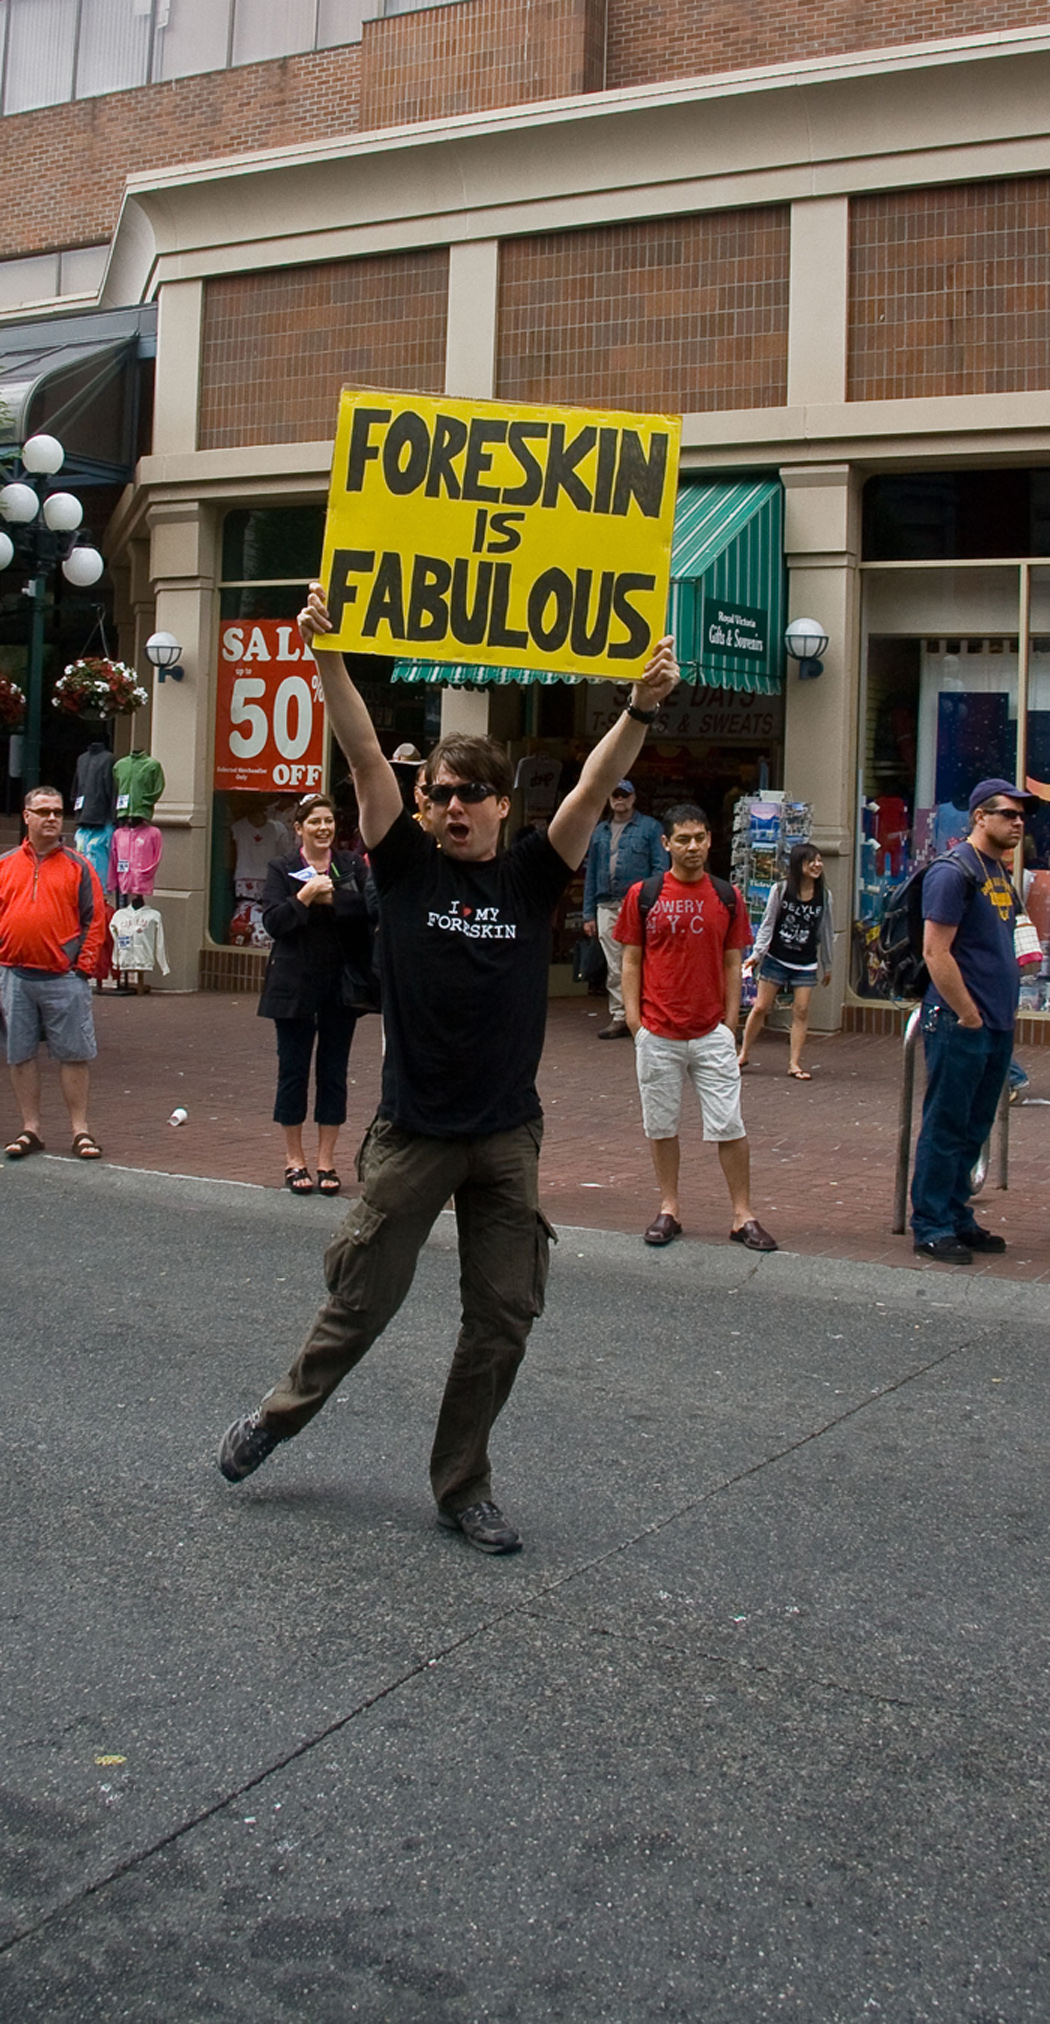 """ Foreskin is Fabulous"""